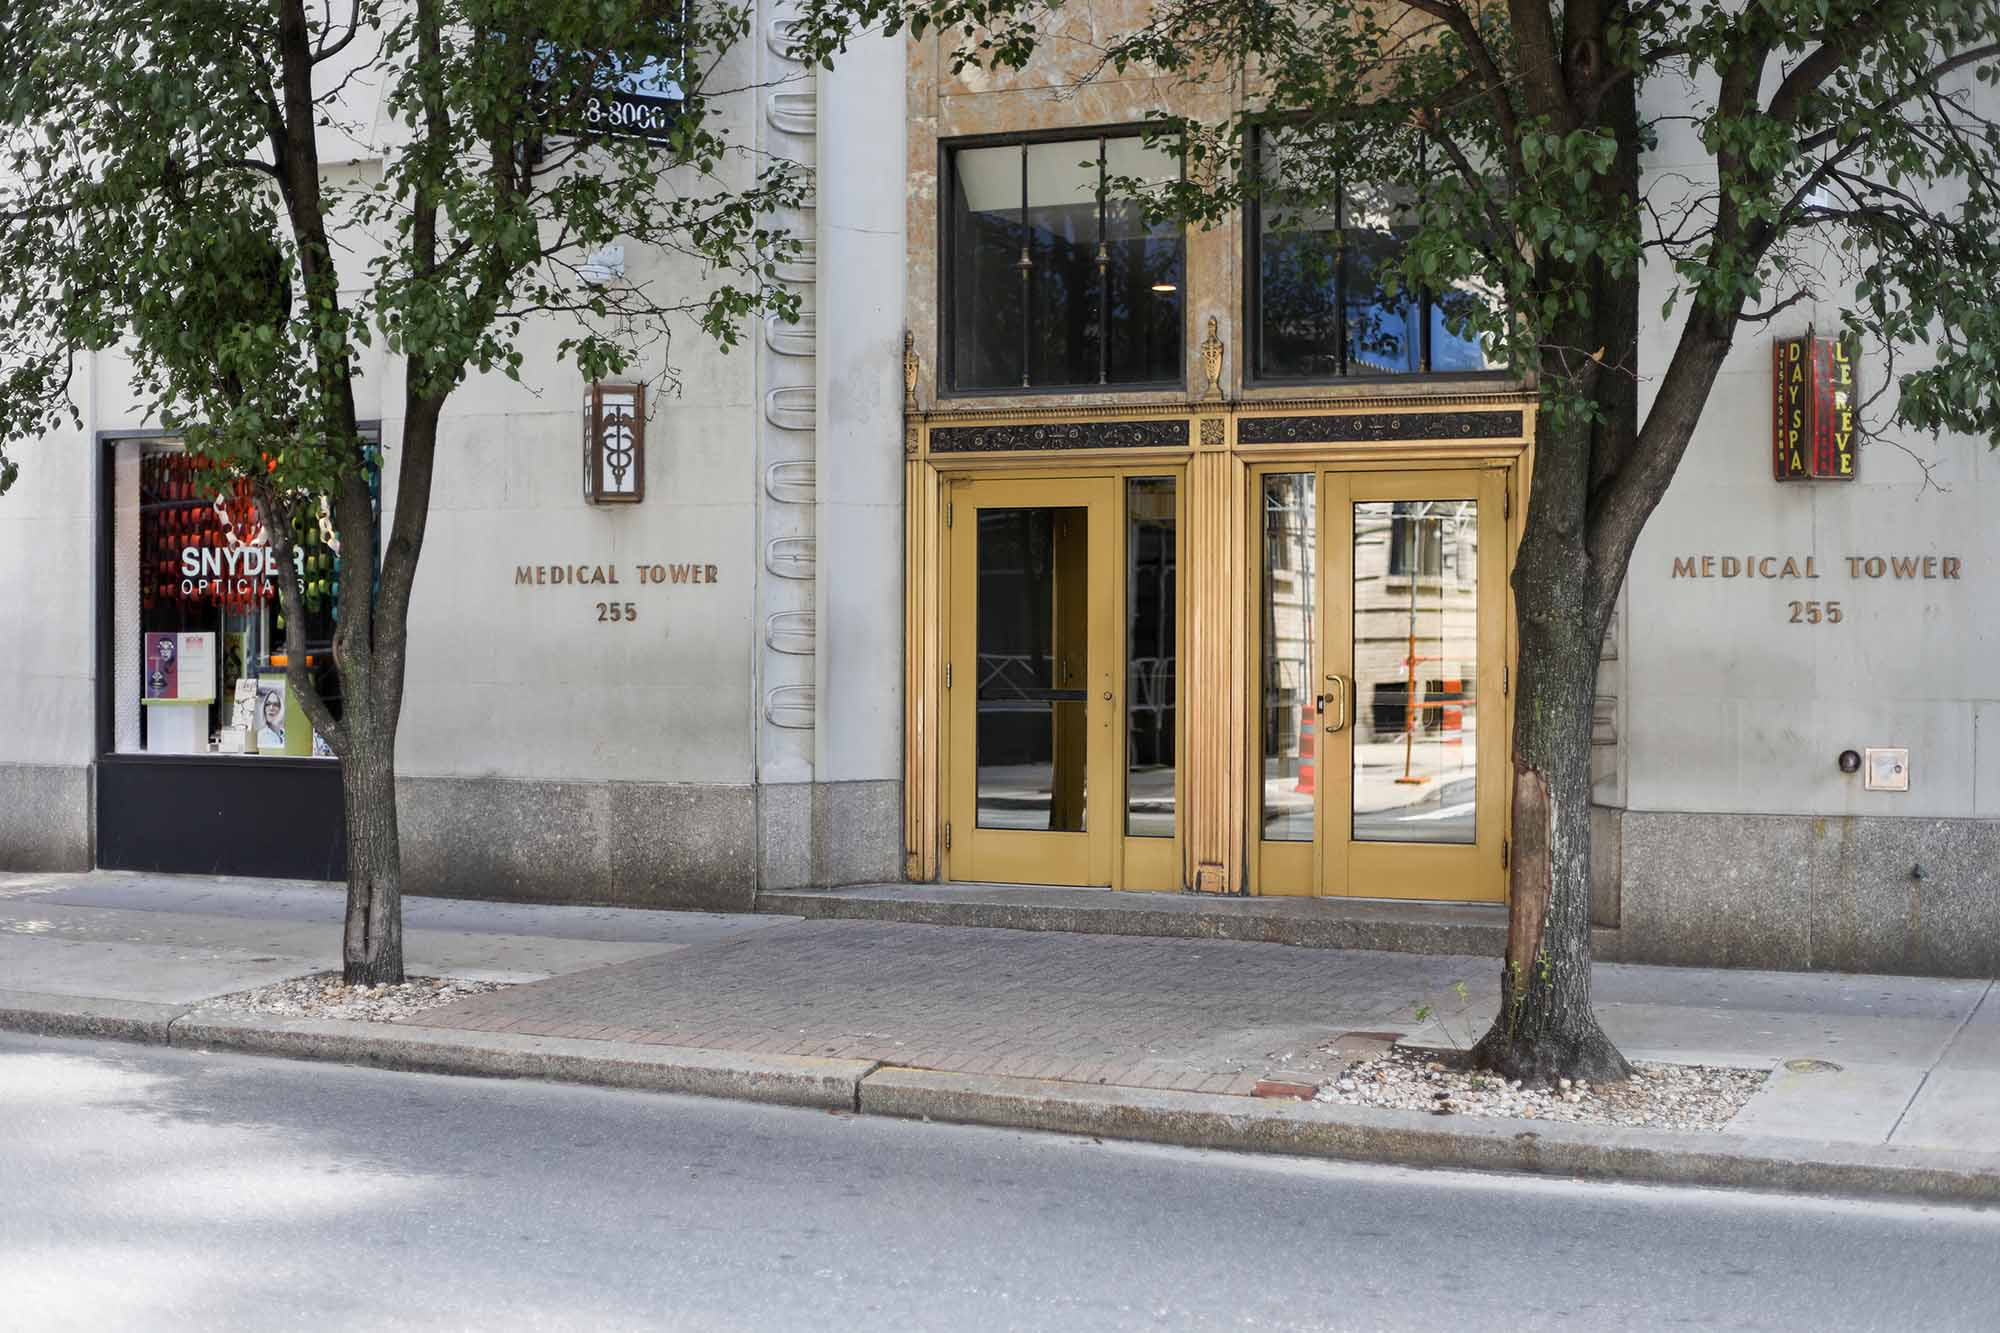 Spruce Chiropractic Health Center is located in the Medical Tower, Rittenhouse Square Philadelphia